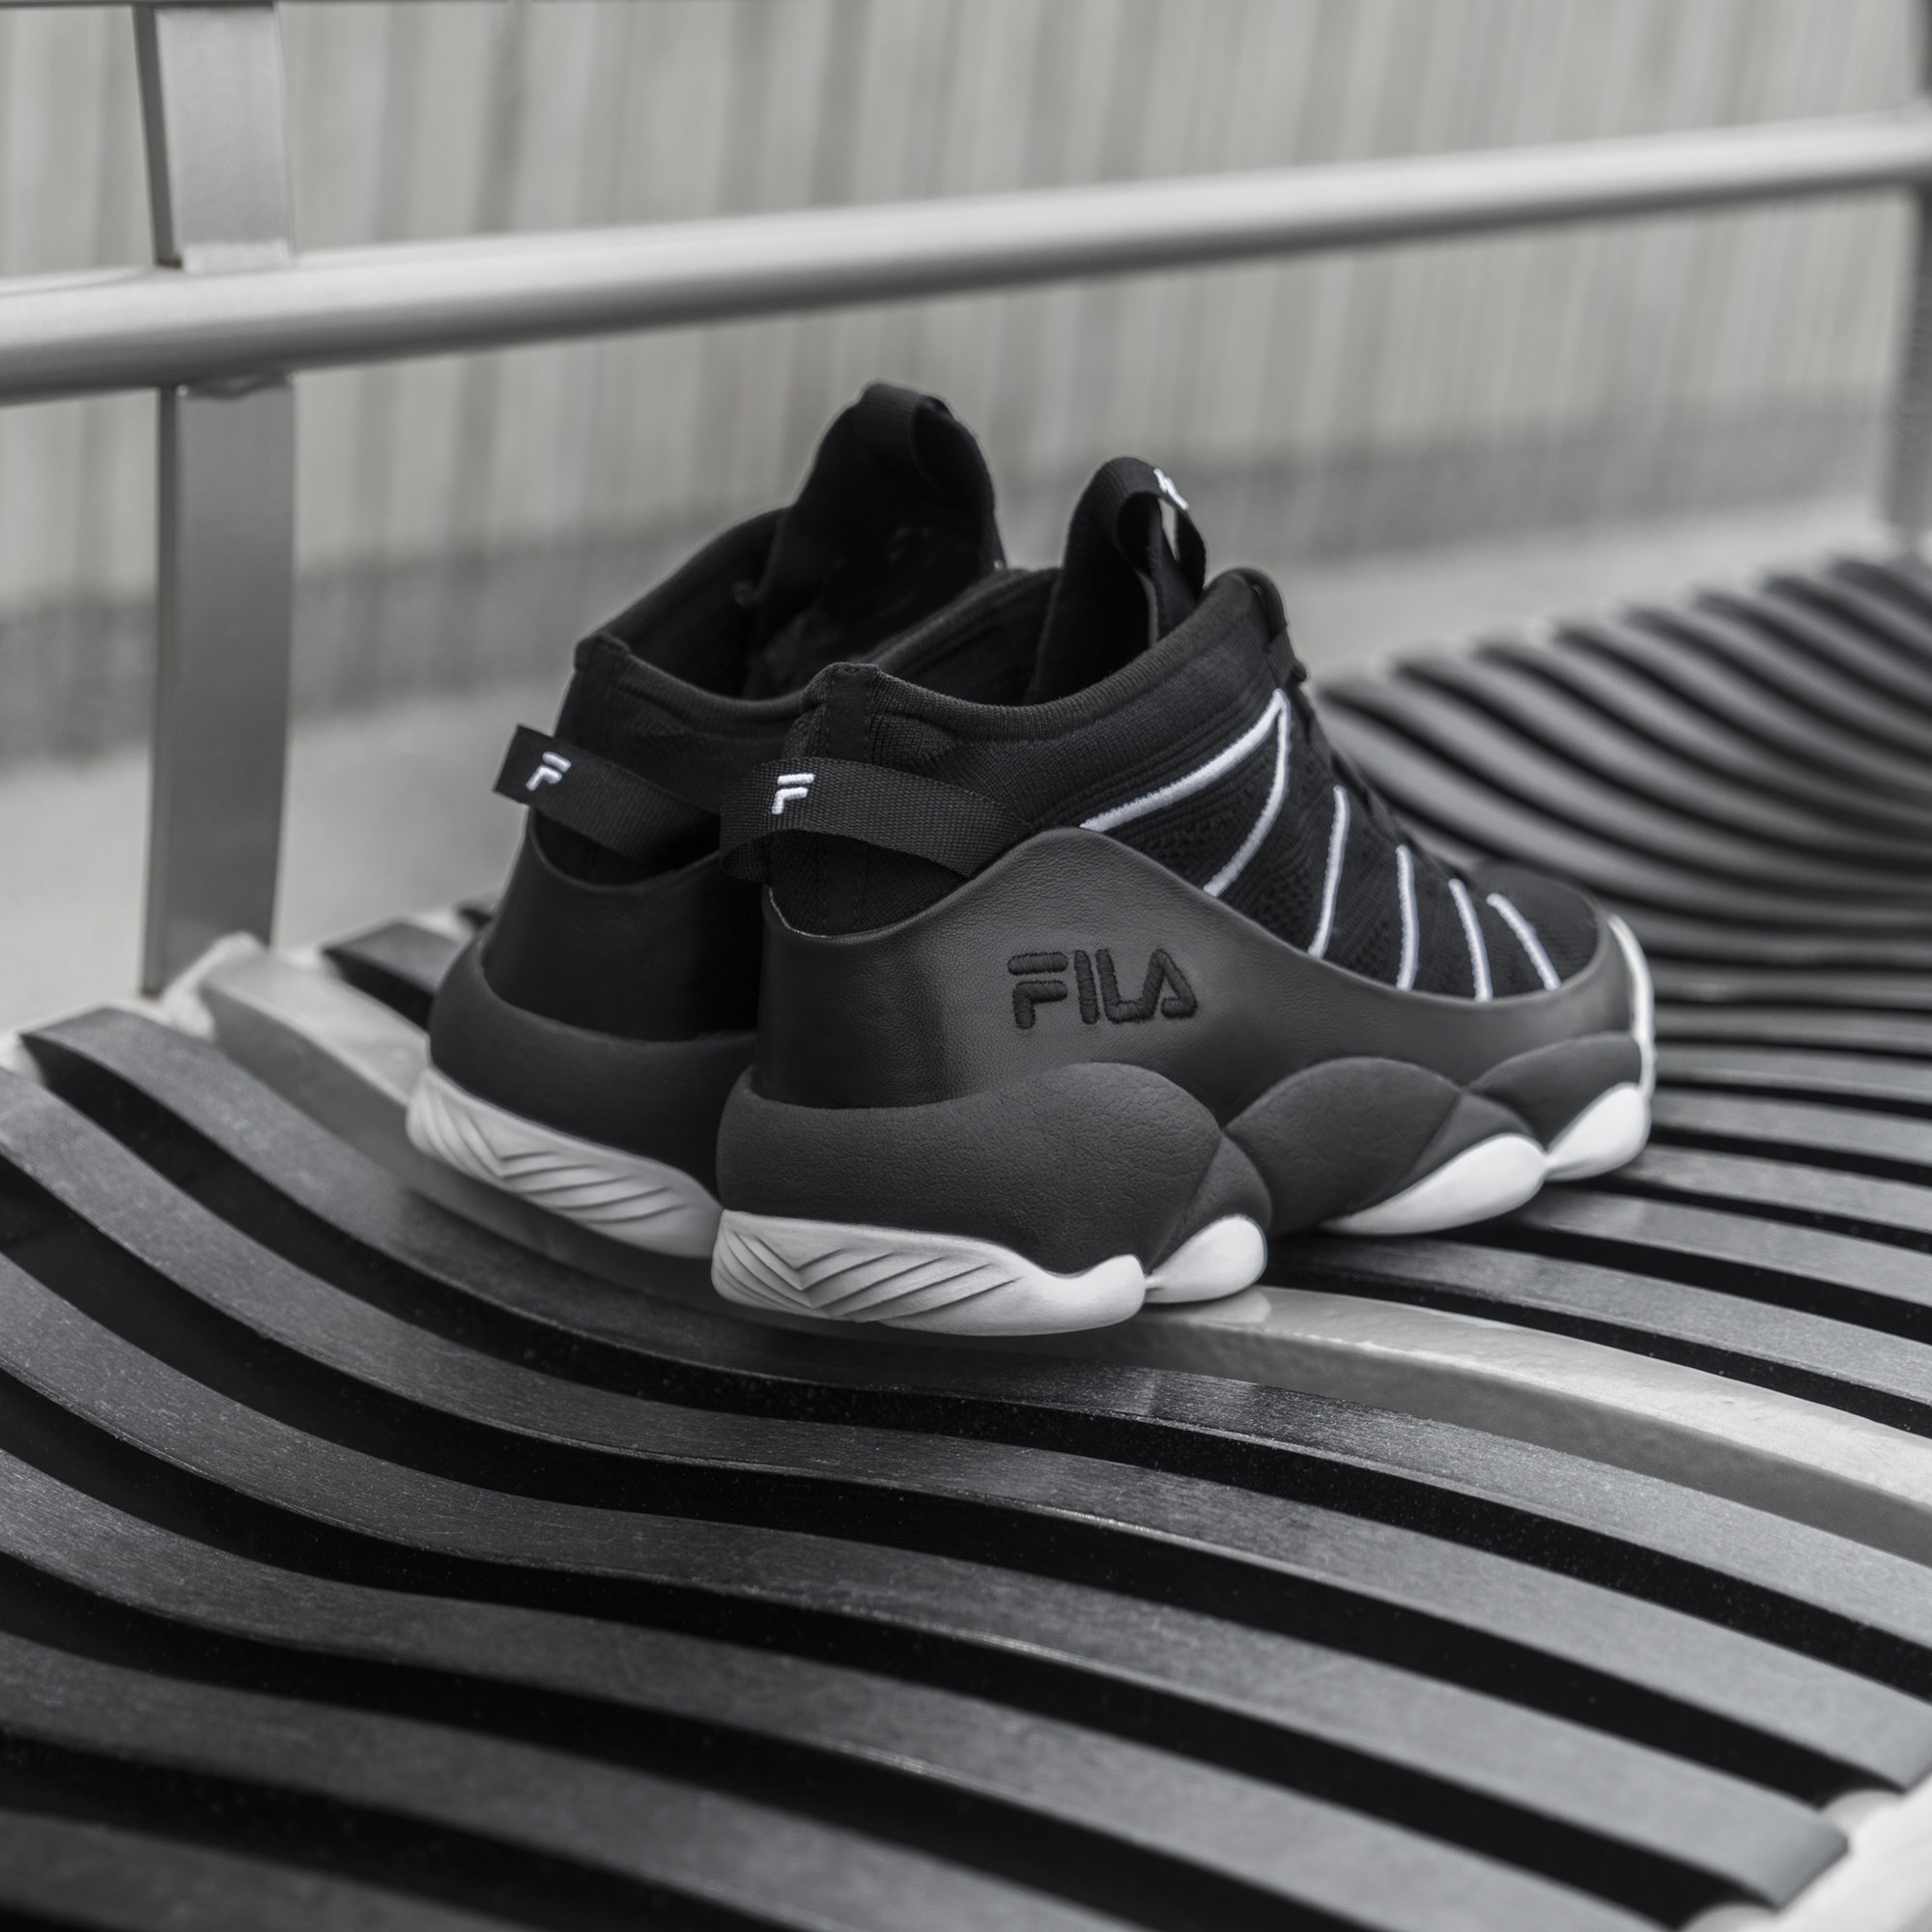 FILA Spaghetti Knit all conference pack 4 - WearTesters